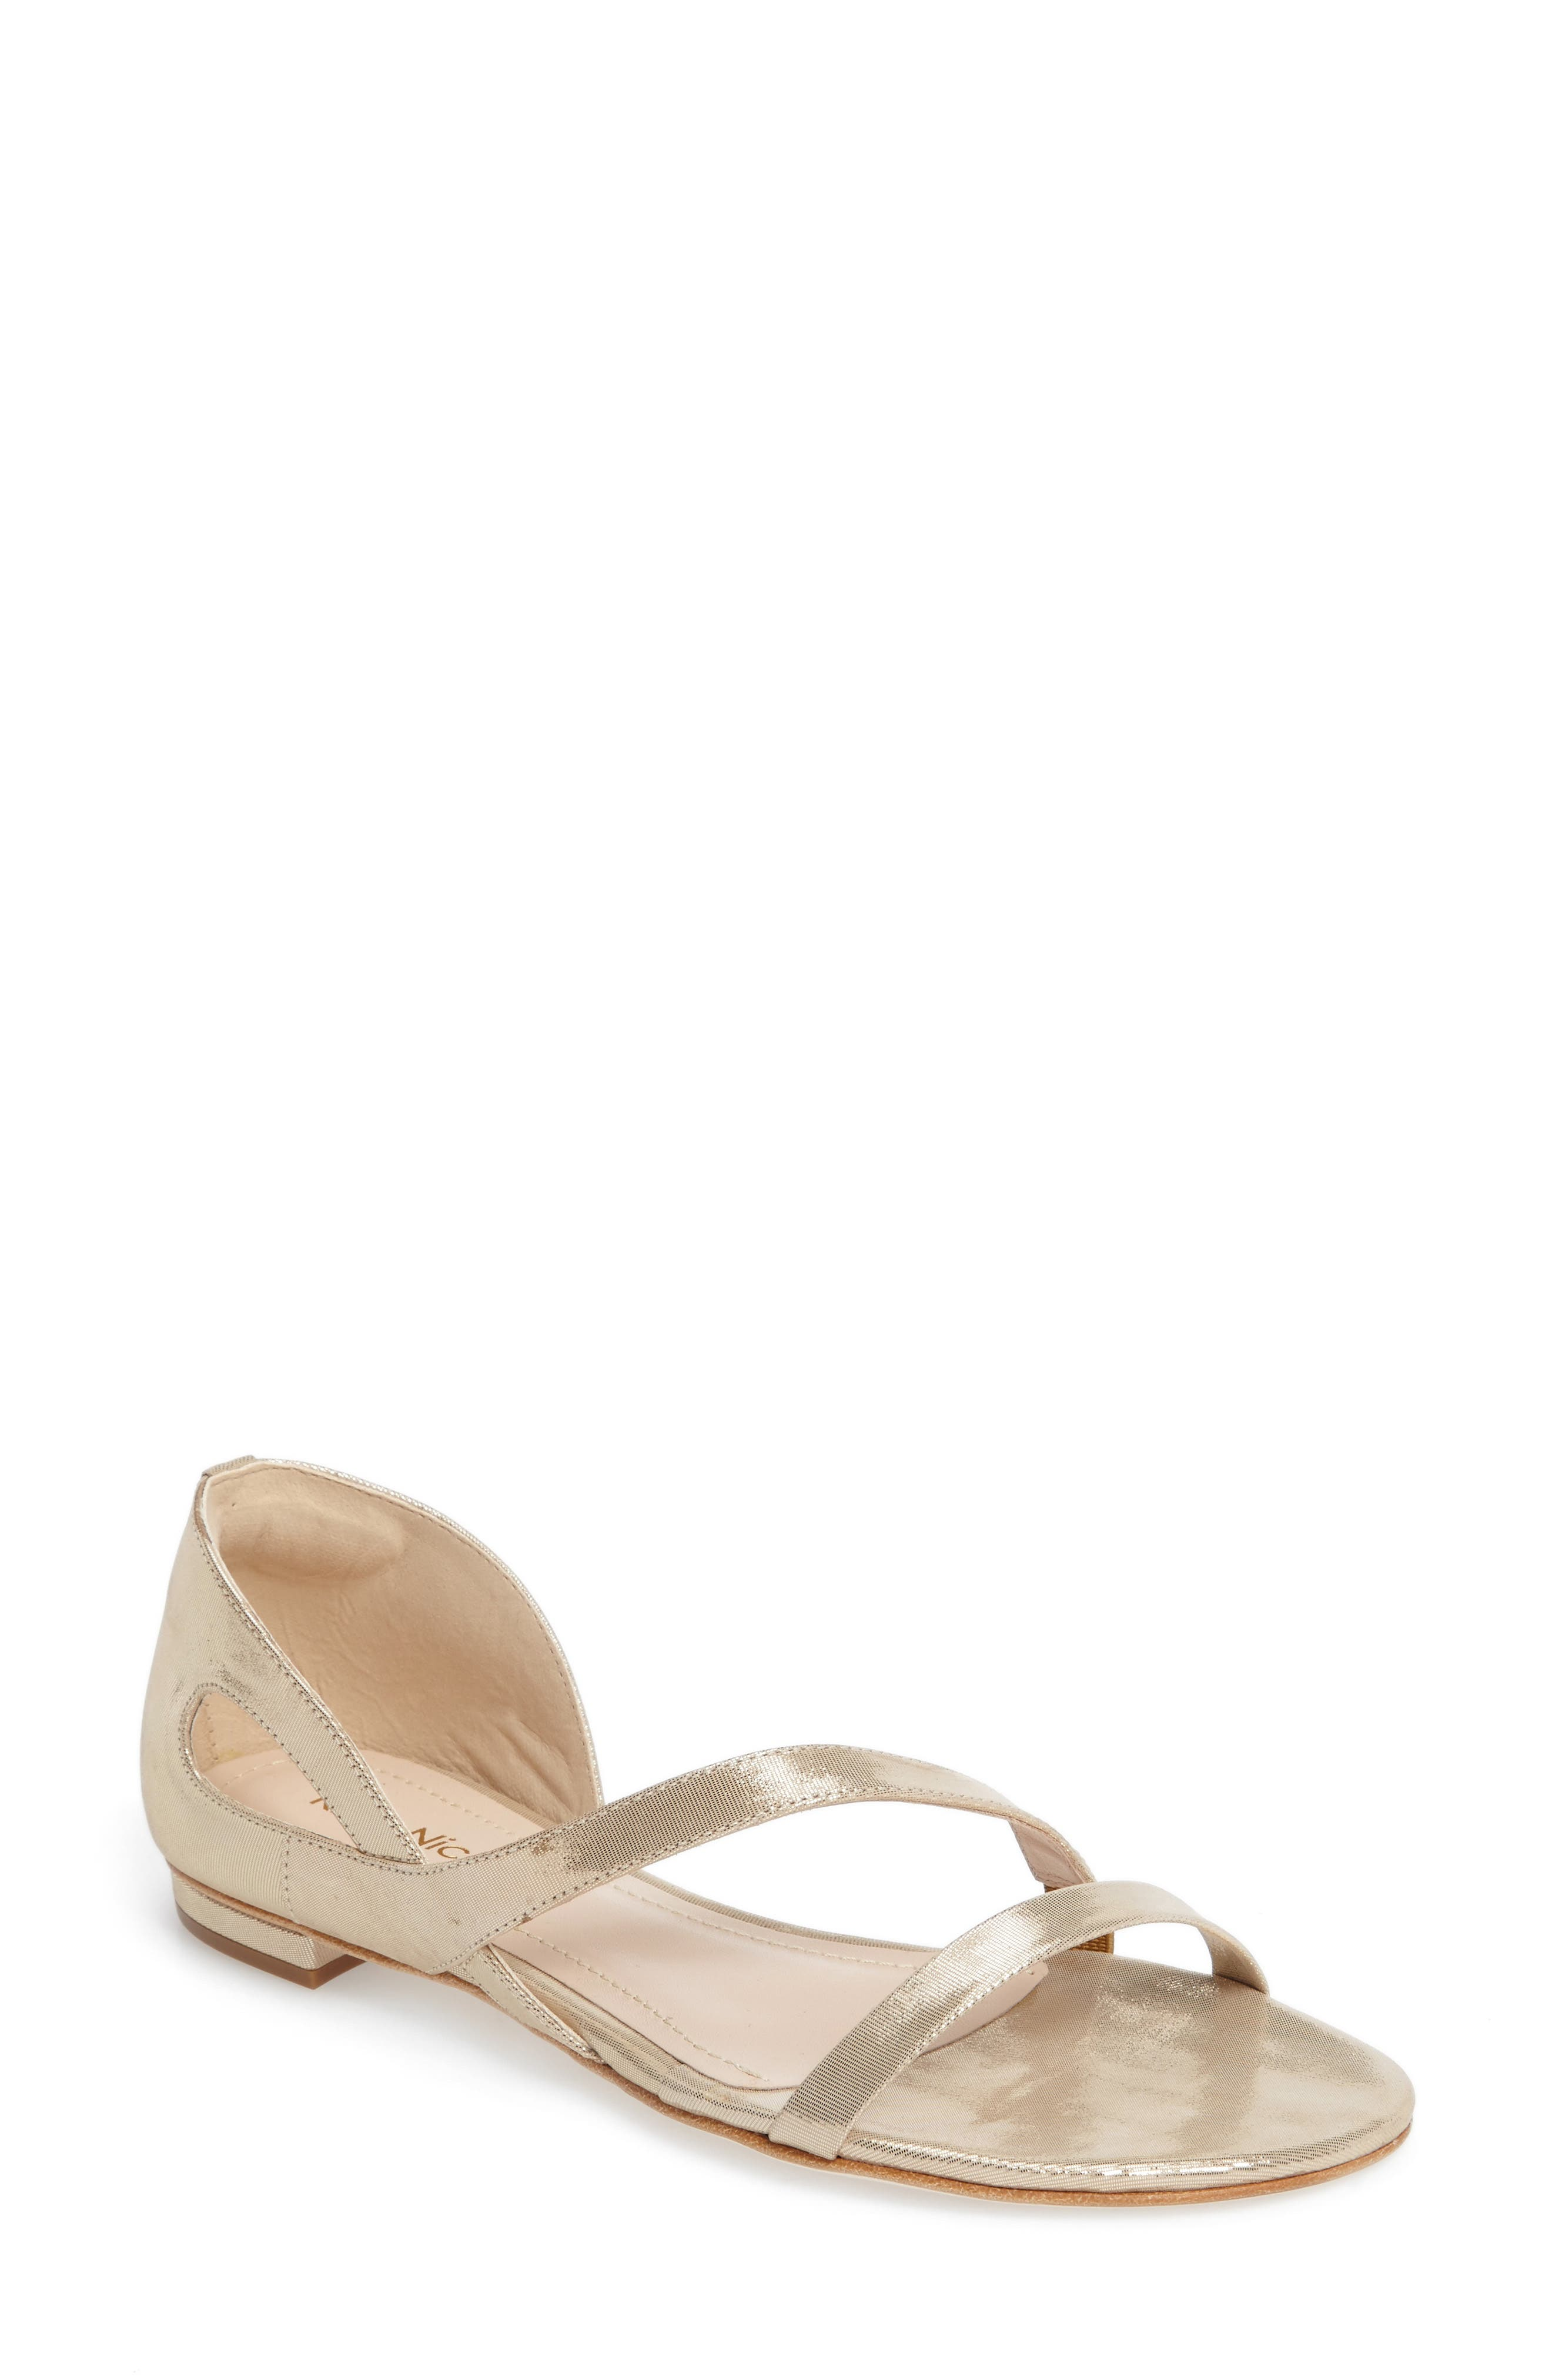 KLUB NICO Jeanne Sandal, Main, color, CHAMPAGNE LEATHER